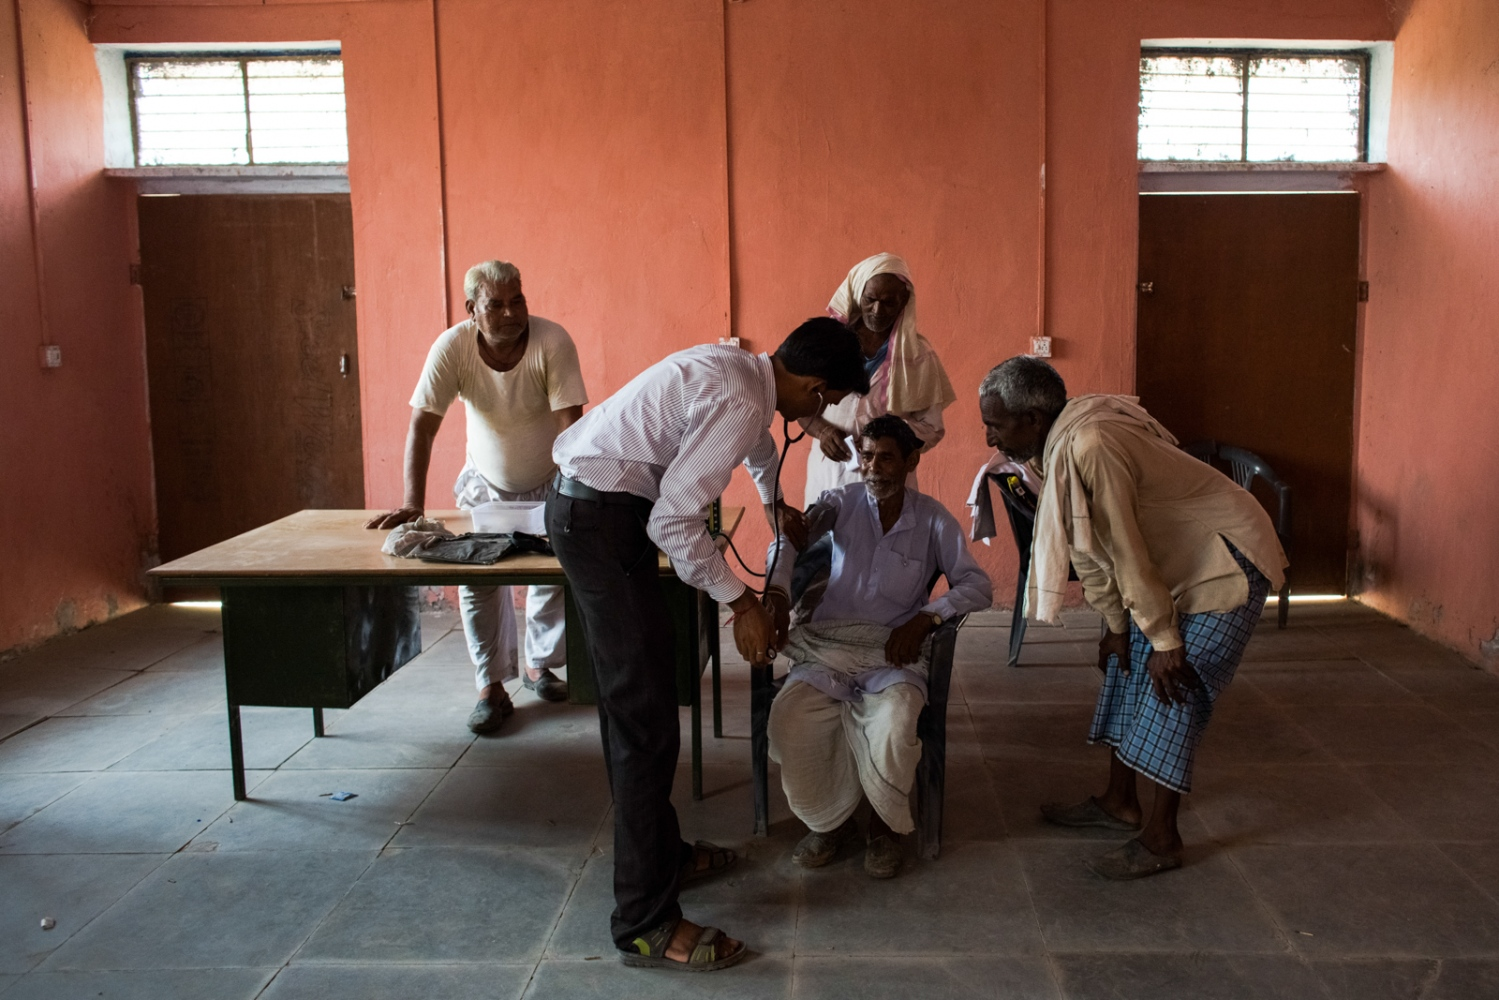 An Indian optician takes the blood pressure of a glaucoma patient at a field camp in Chilori village, Reni, some 55 kms from Alwar in the state of Rajasthan on August 28, 2014.